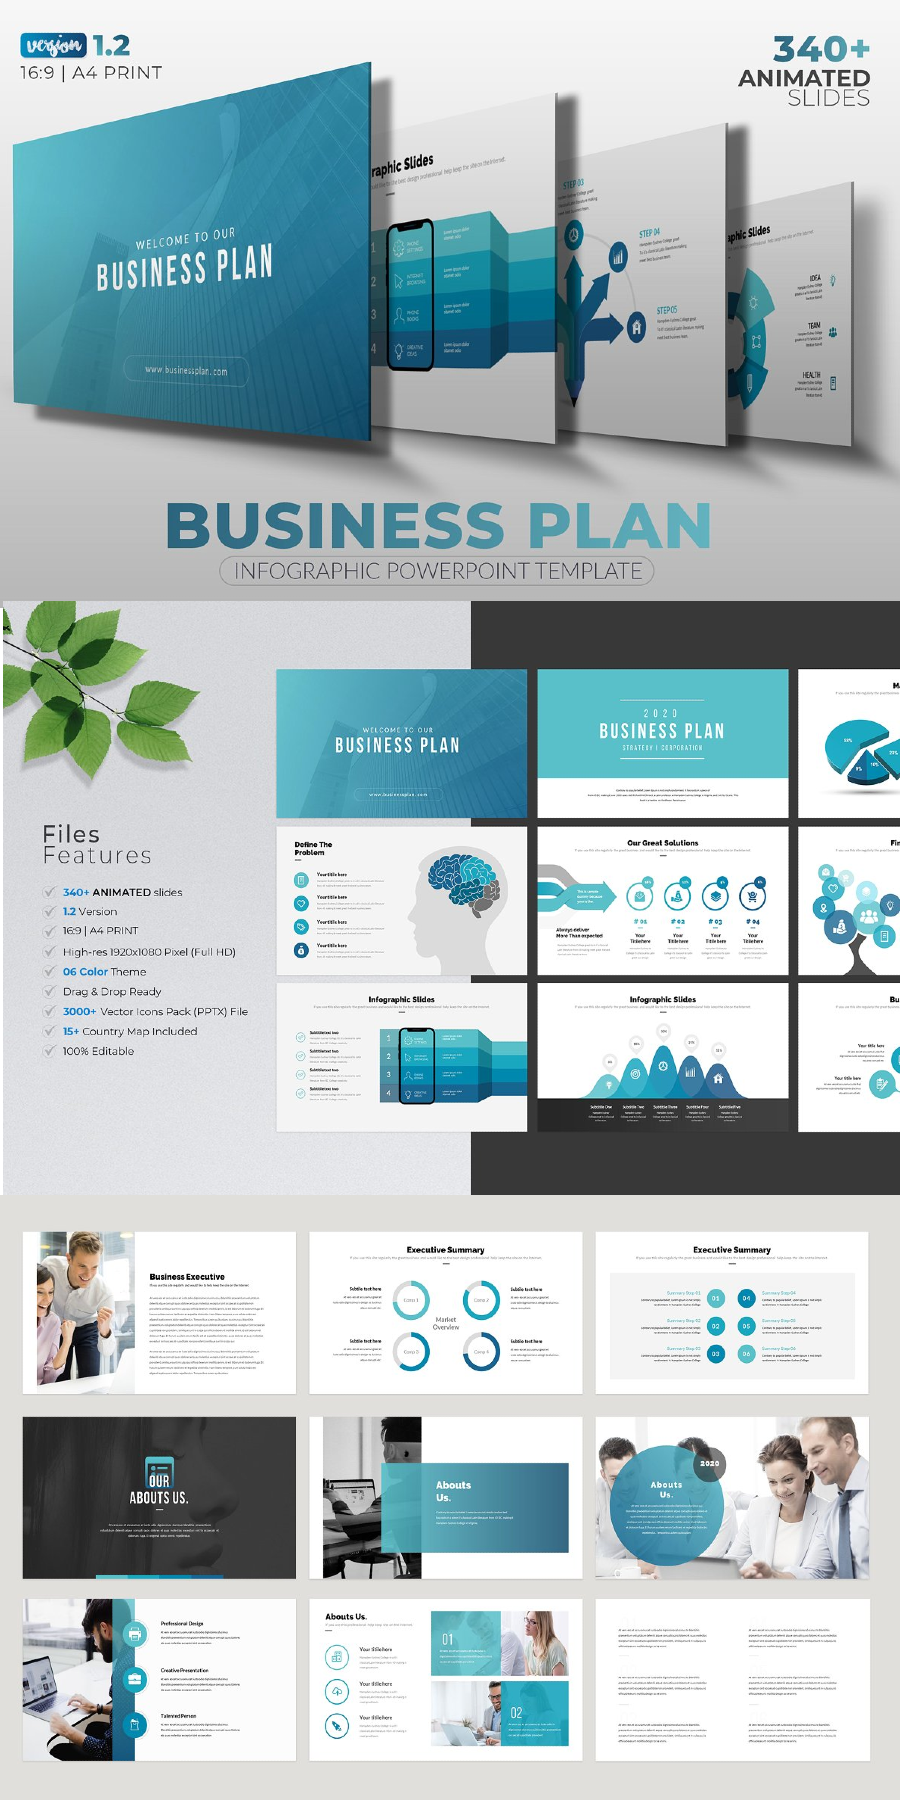 Business Plan Infographic Powerpoint In 2020 Business Plan Infographic Business Plan Presentation Infographic Powerpoint